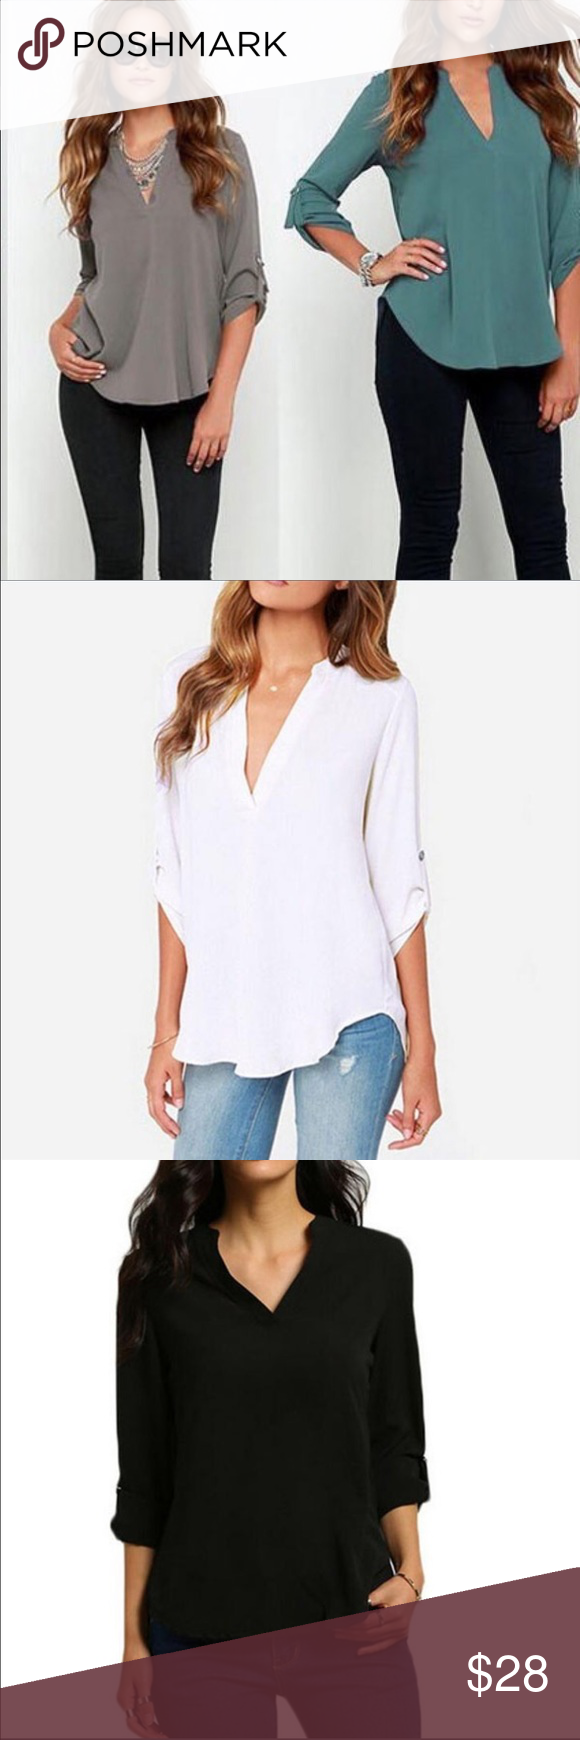 ⚡️FLASH SALE! V neck blouse New- perfect for fall! Soft and comfy. Wear with leggings or jeans. Dress it up or down. Flattering on any body shape. Comment which color you want after you choose your size 😀 Tops Blouses